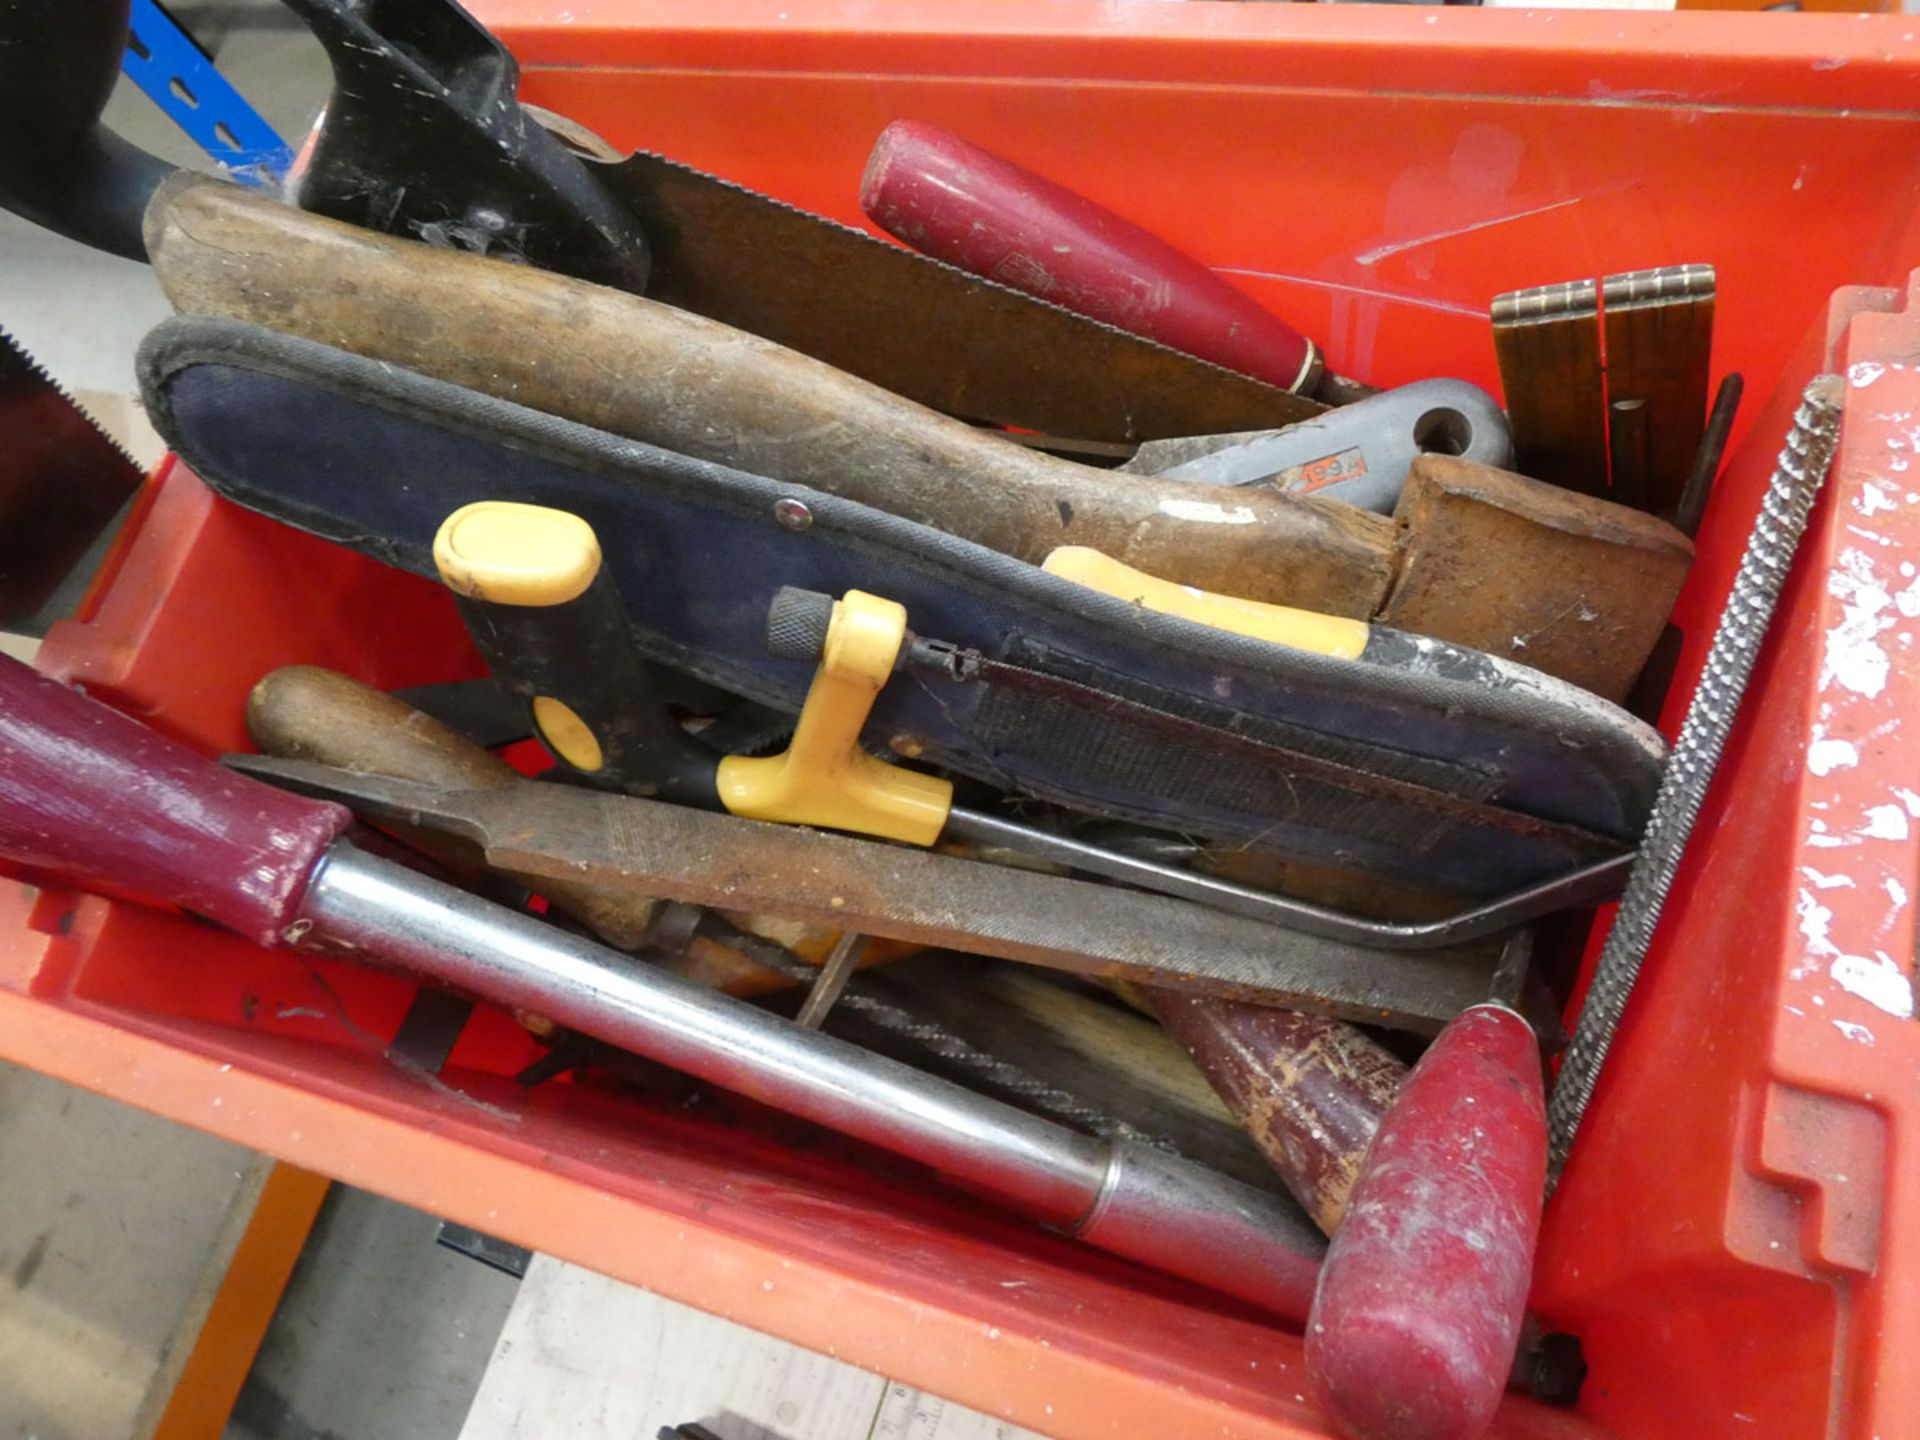 Wooden toolbox of tools, saw horse and a plastic toolbox containing: saws, screwdrivers and files - Image 3 of 4